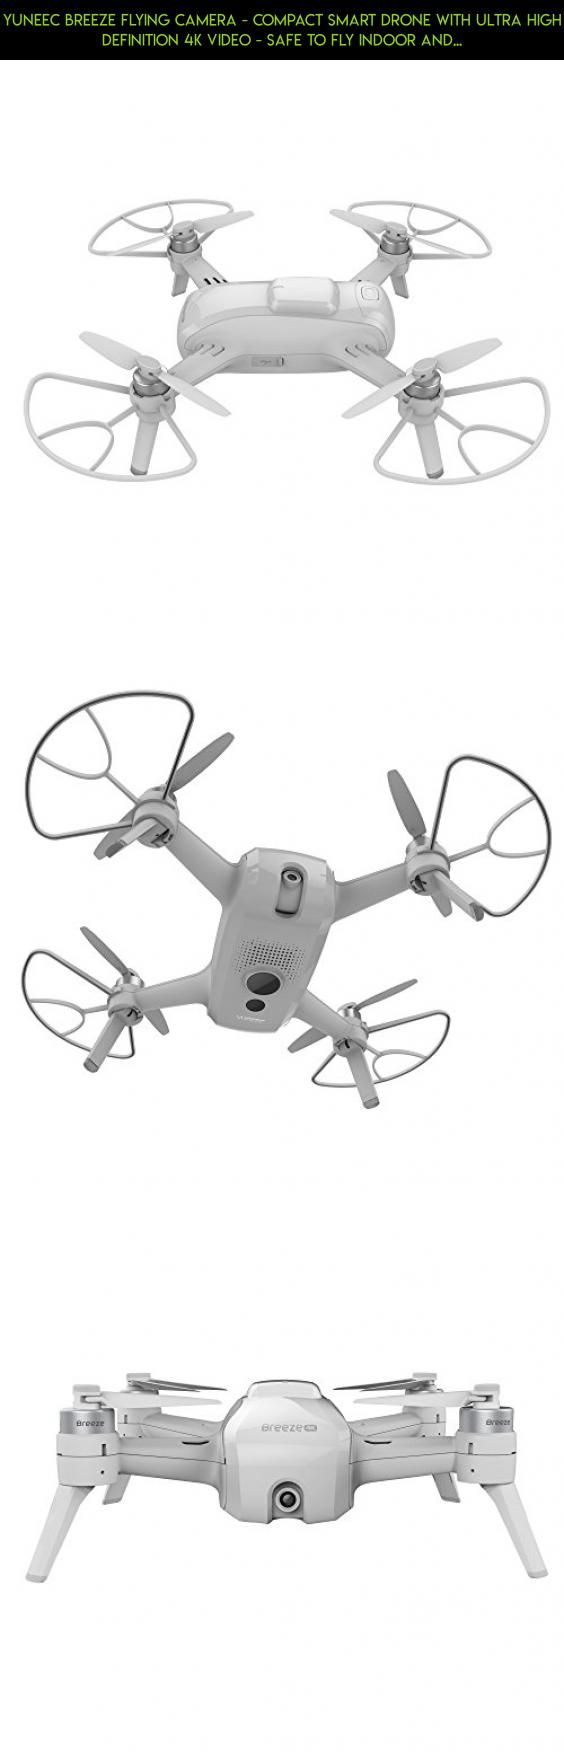 Yuneec Breeze Flying Camera - Compact Smart Drone with Ultra High Definition 4K video - safe to fly indoor and outdoor #tech #racing #wingsland #s6 #products #camera #technology #gadgets #plans #drone #shopping #fpv #parts #kit